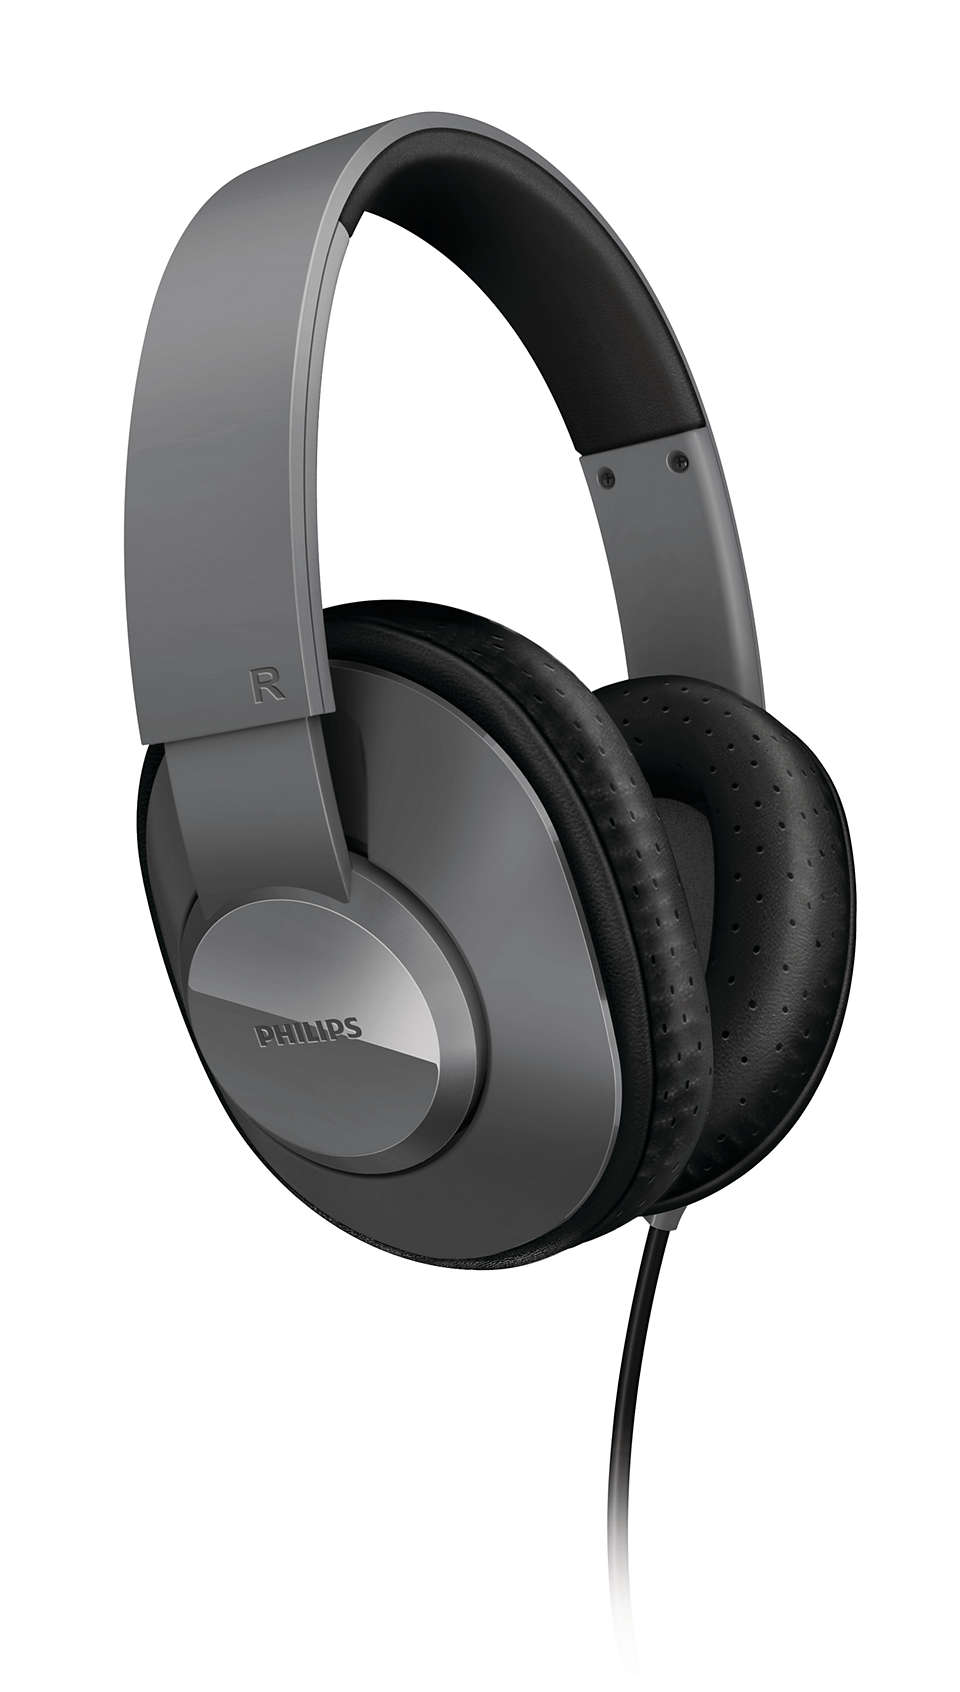 Dynamic bass, comfortable fit